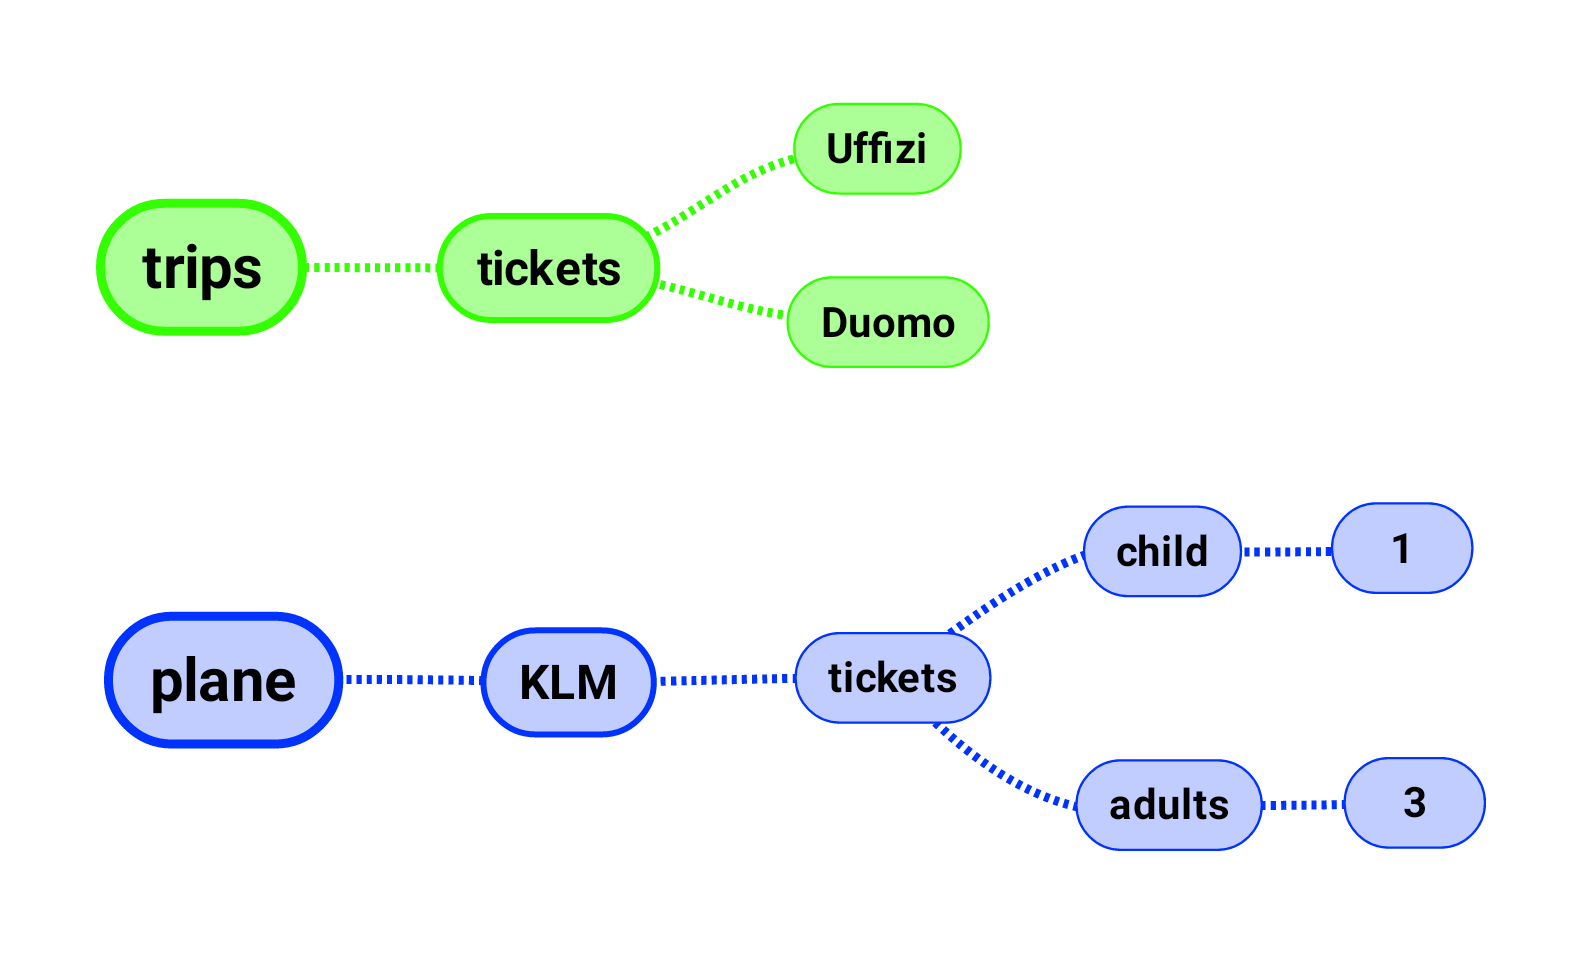 a green and blue line of connected associations for trips and plane